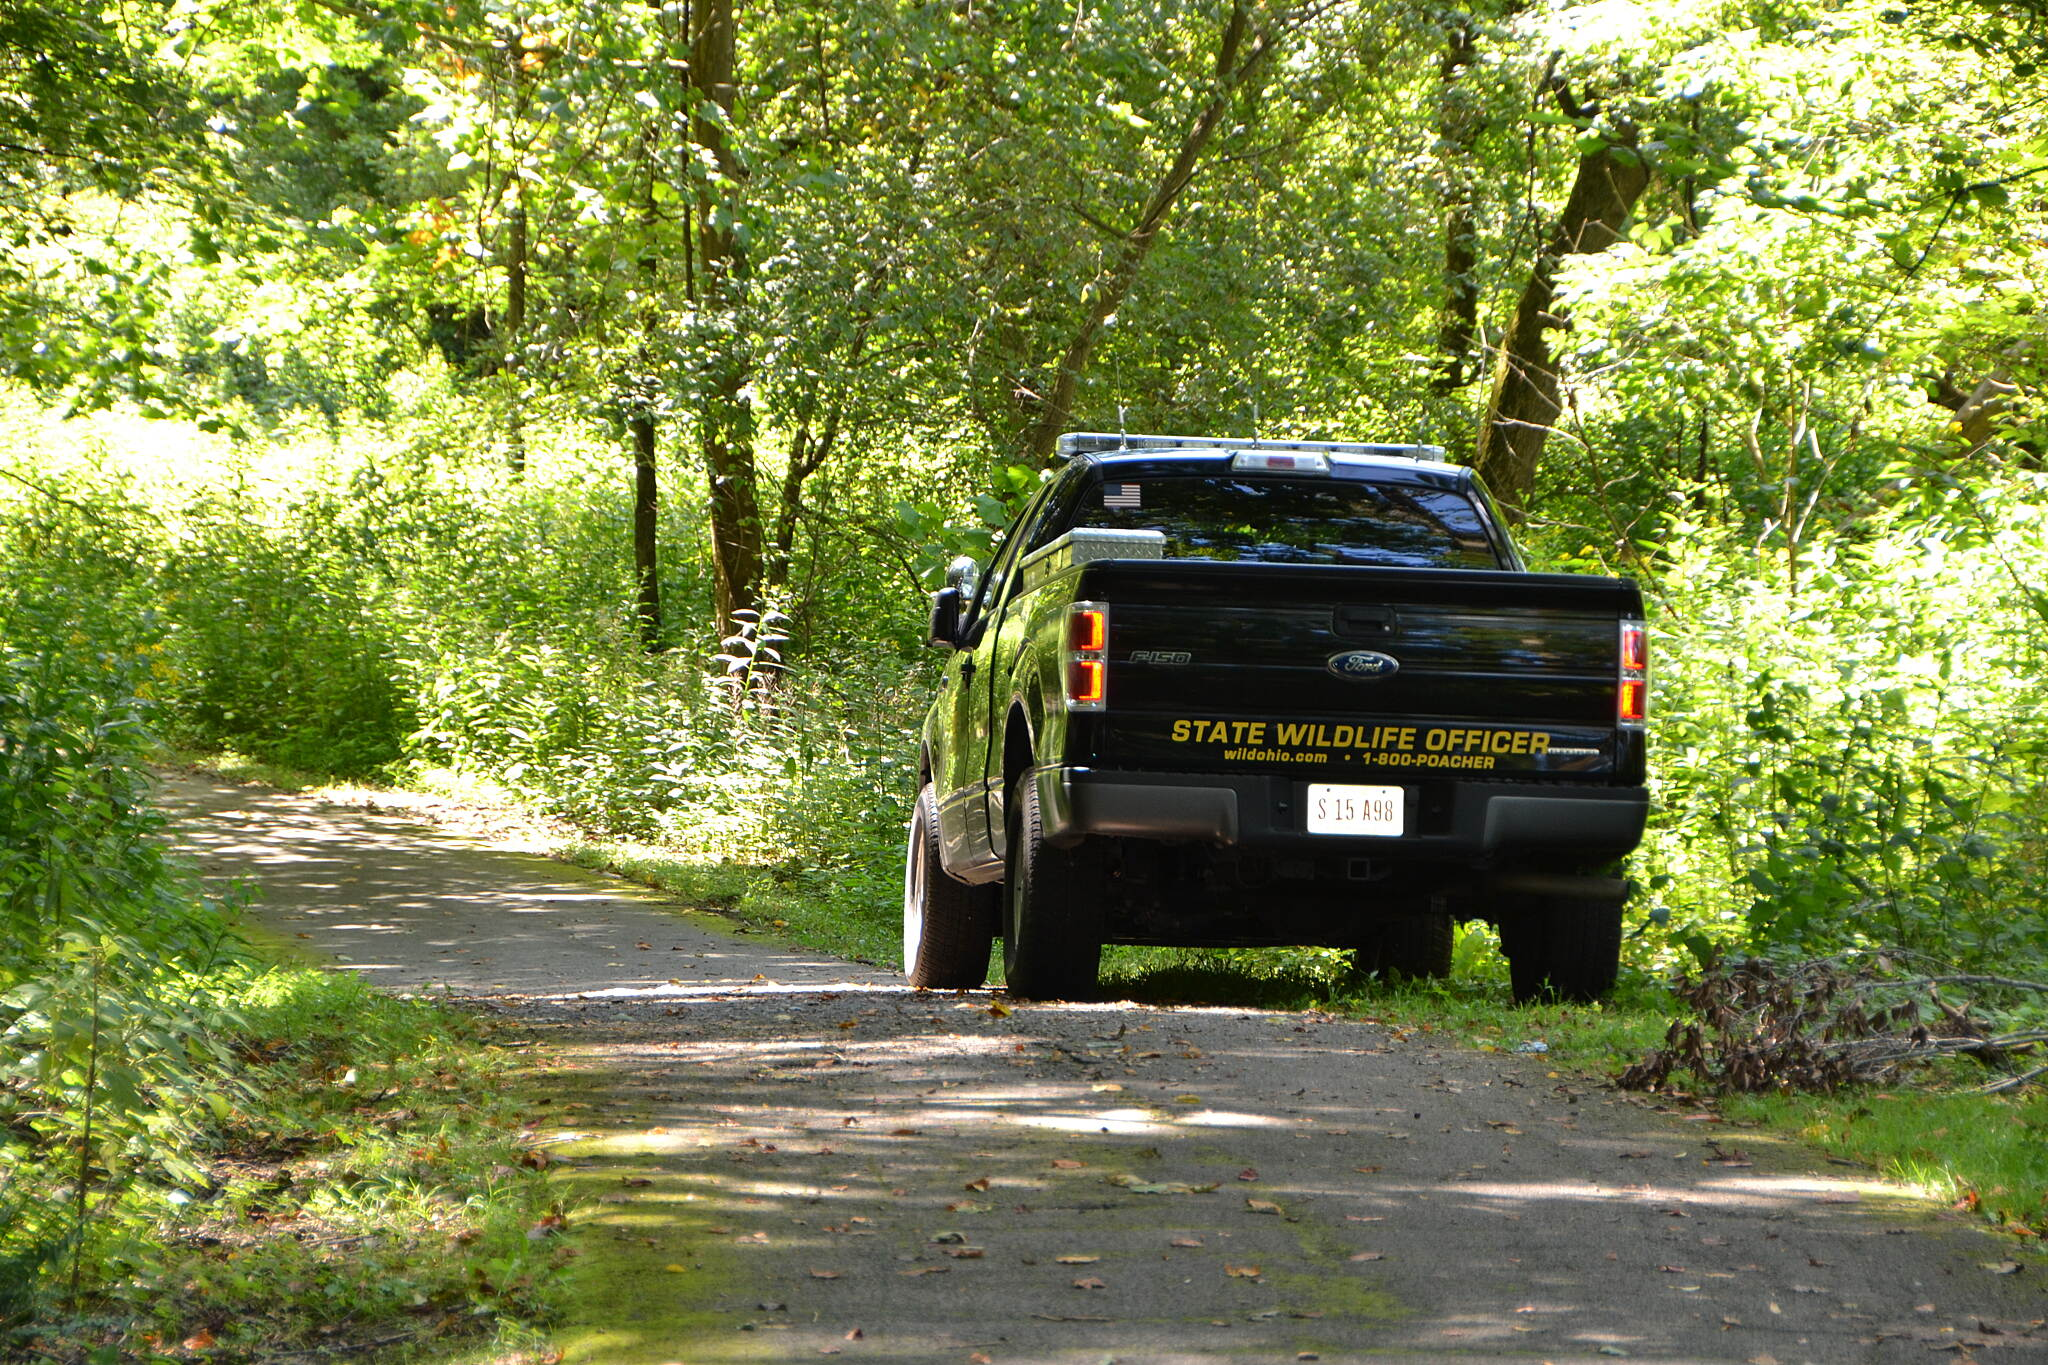 Blackhand Gorge Trail security there were wildlife officers around the trails